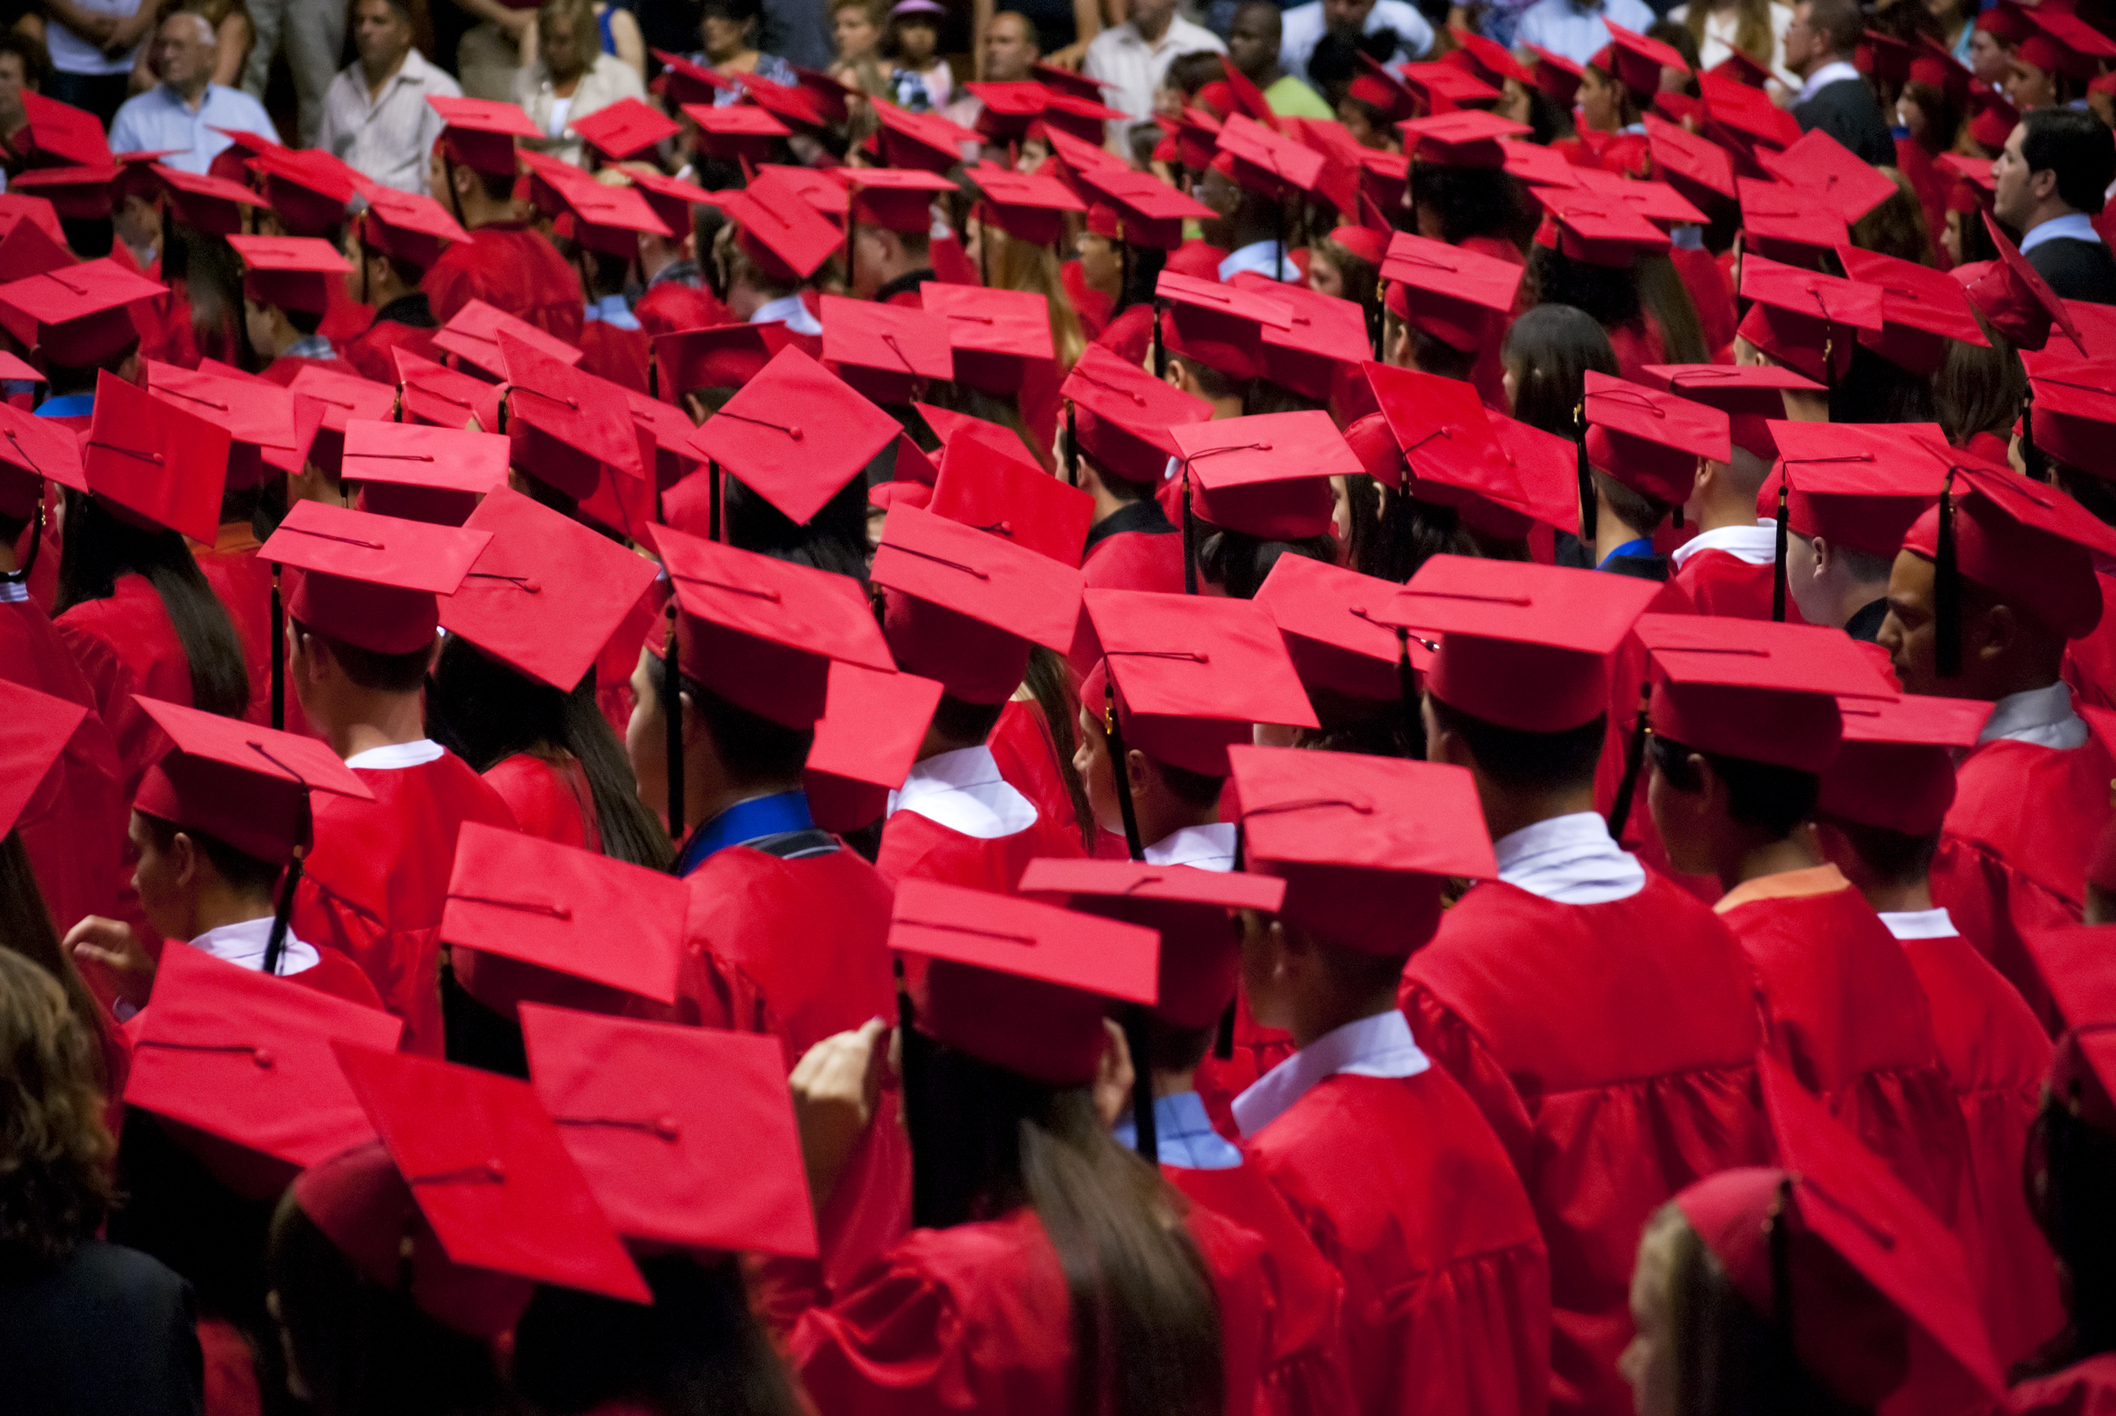 Mortarboard and gown place of learning